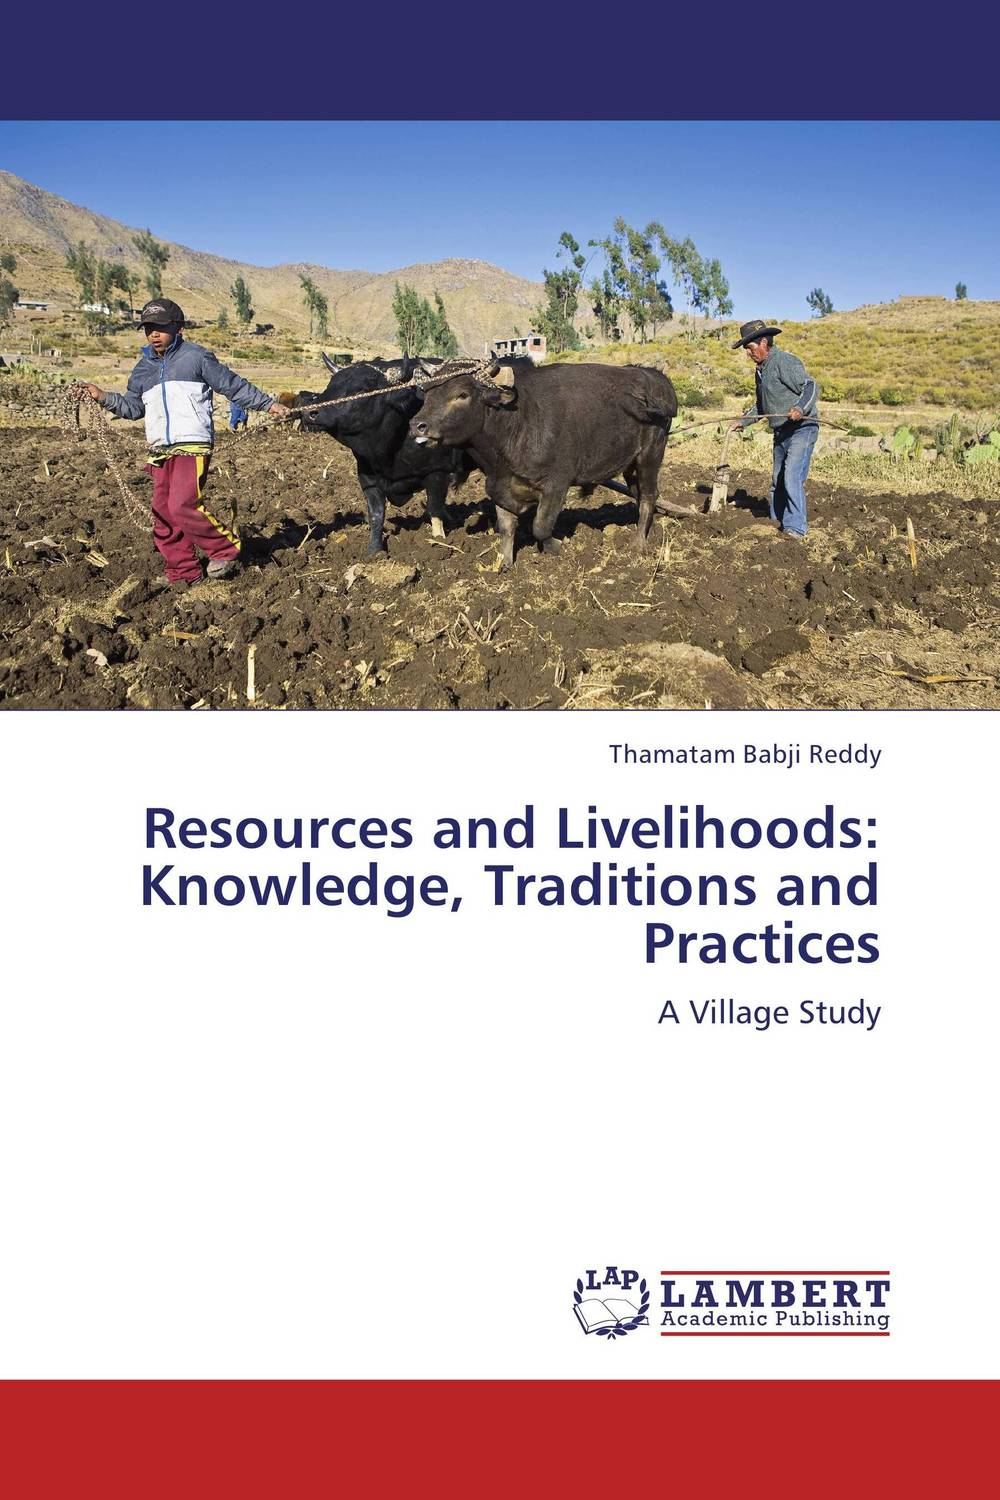 Resources and Livelihoods: Knowledge, Traditions and Practices survival of local knowledge about management of natural resources